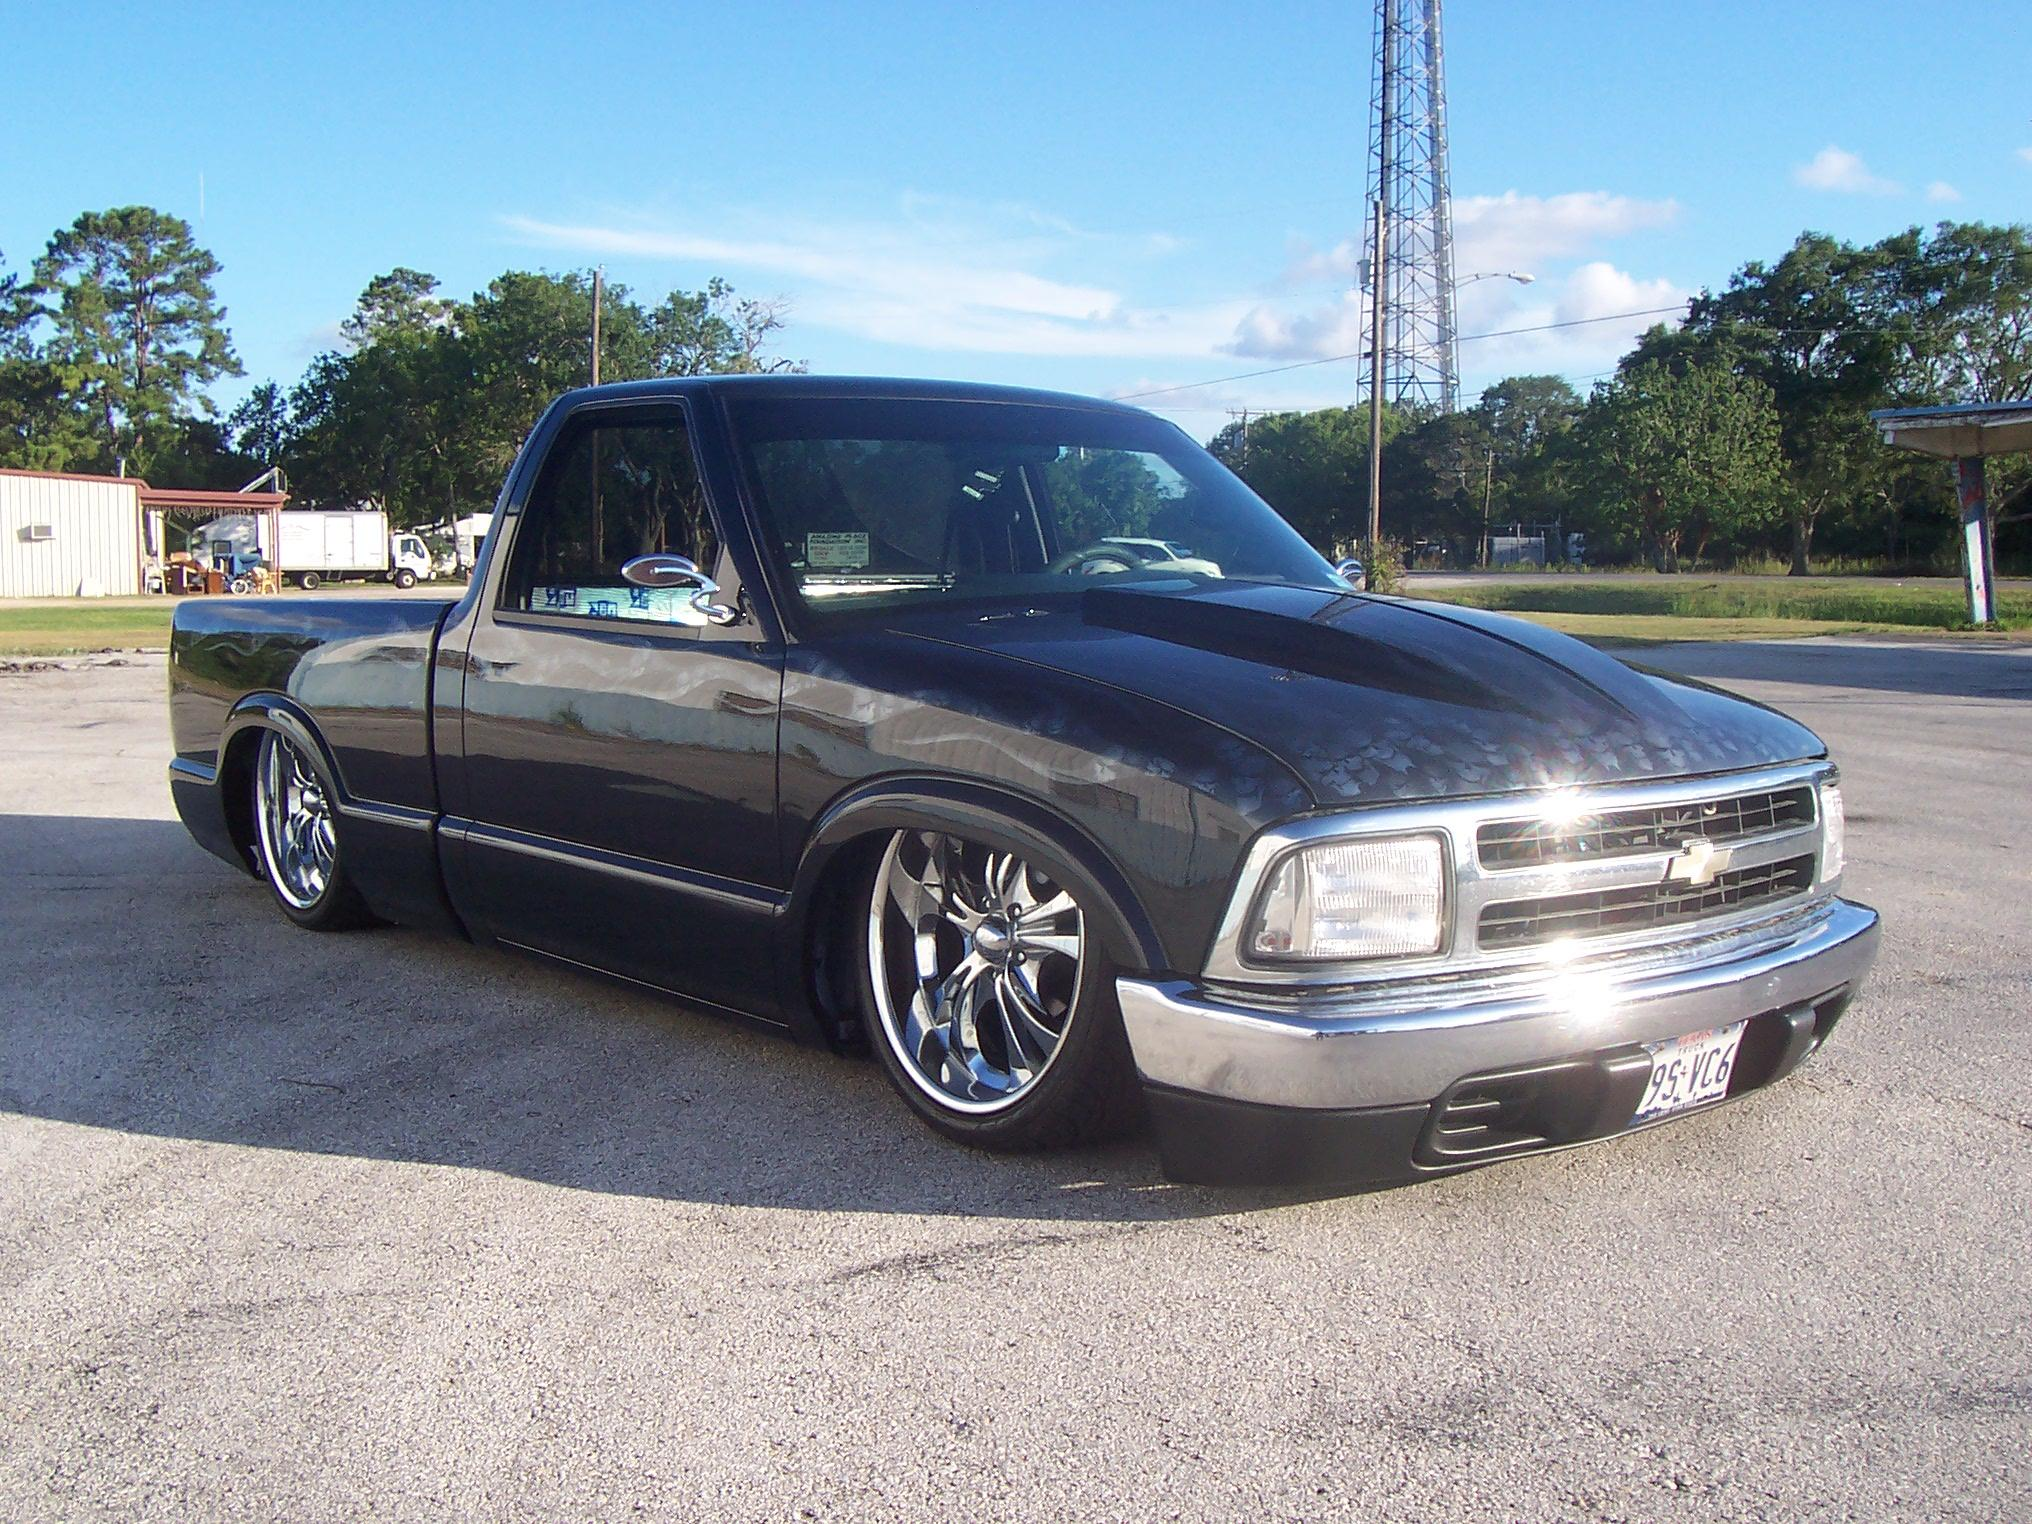 projectneverdone's 1997 Chevrolet S10 Regular Cab